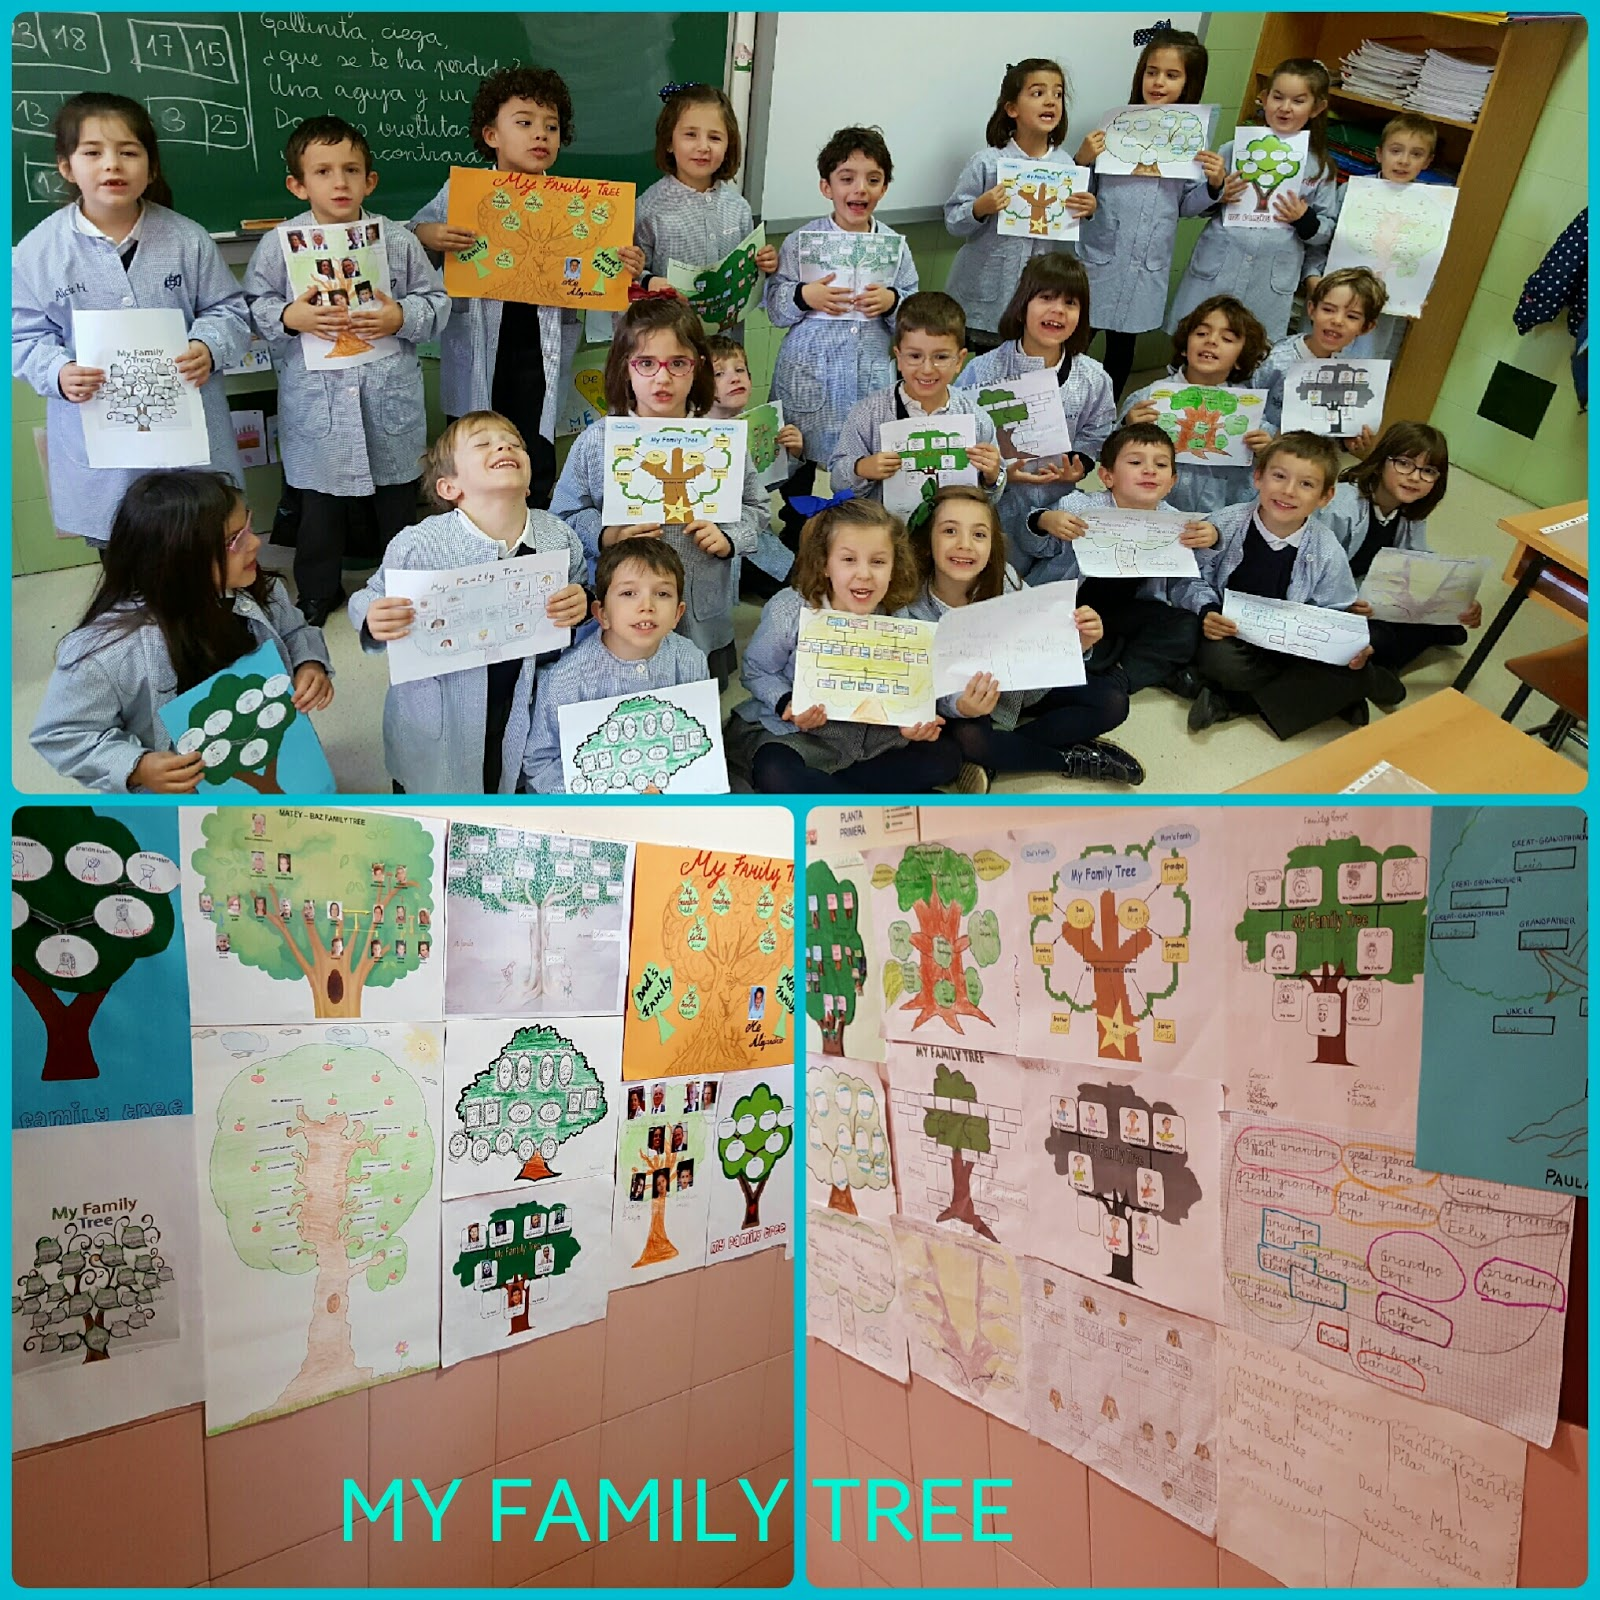 Agustinas Valladolid - 2017 - Primaria 1 - My Family Tree 3